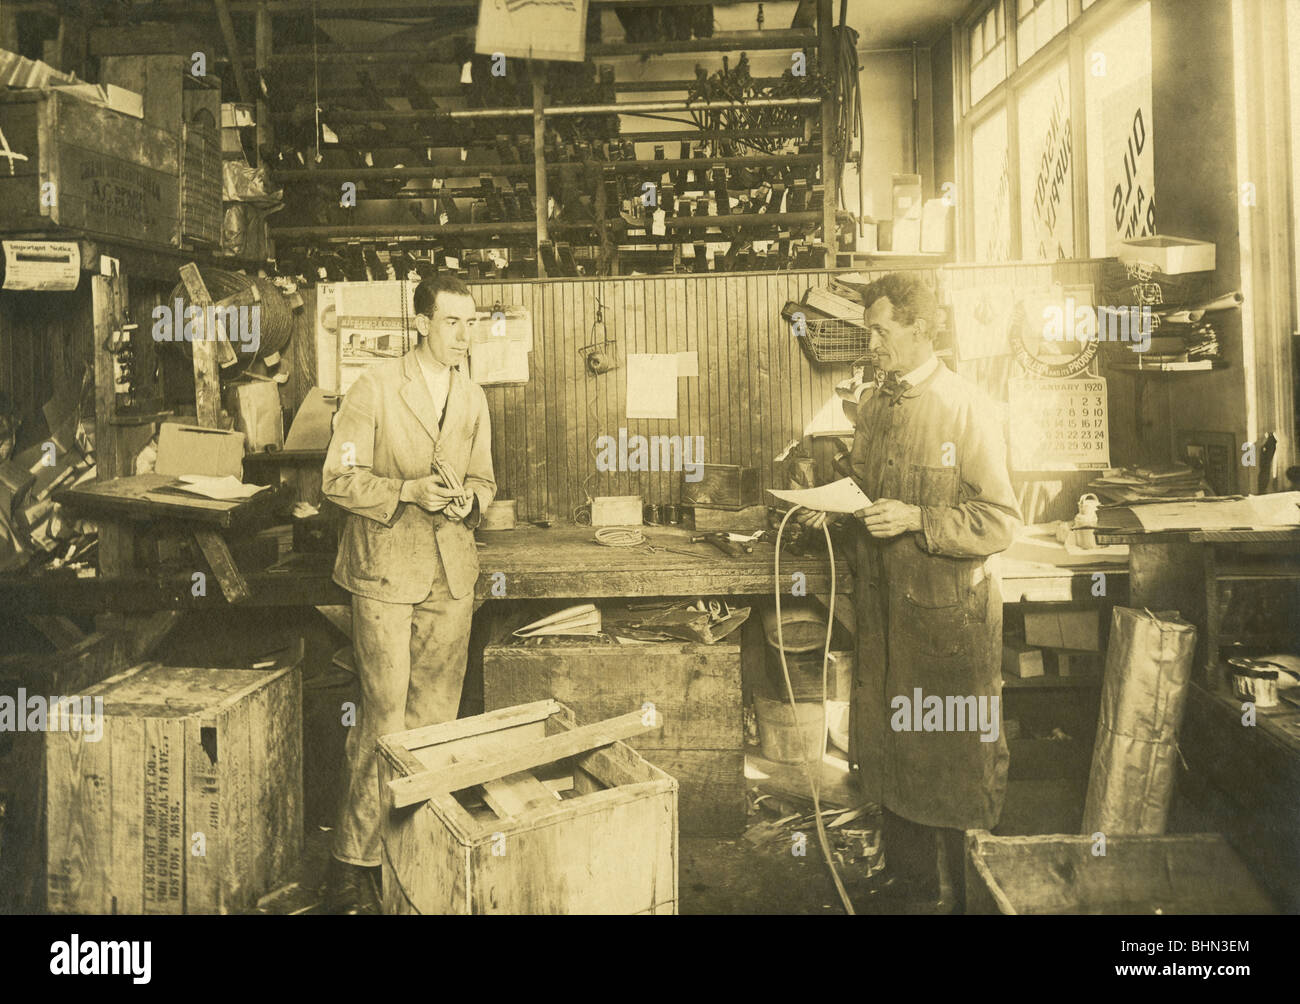 1920-Foto von der Mechaniker-Werkstatt im Linscott Motor Company, 690 Commonwealth Avenue, Boston, Massachusetts. Stockbild